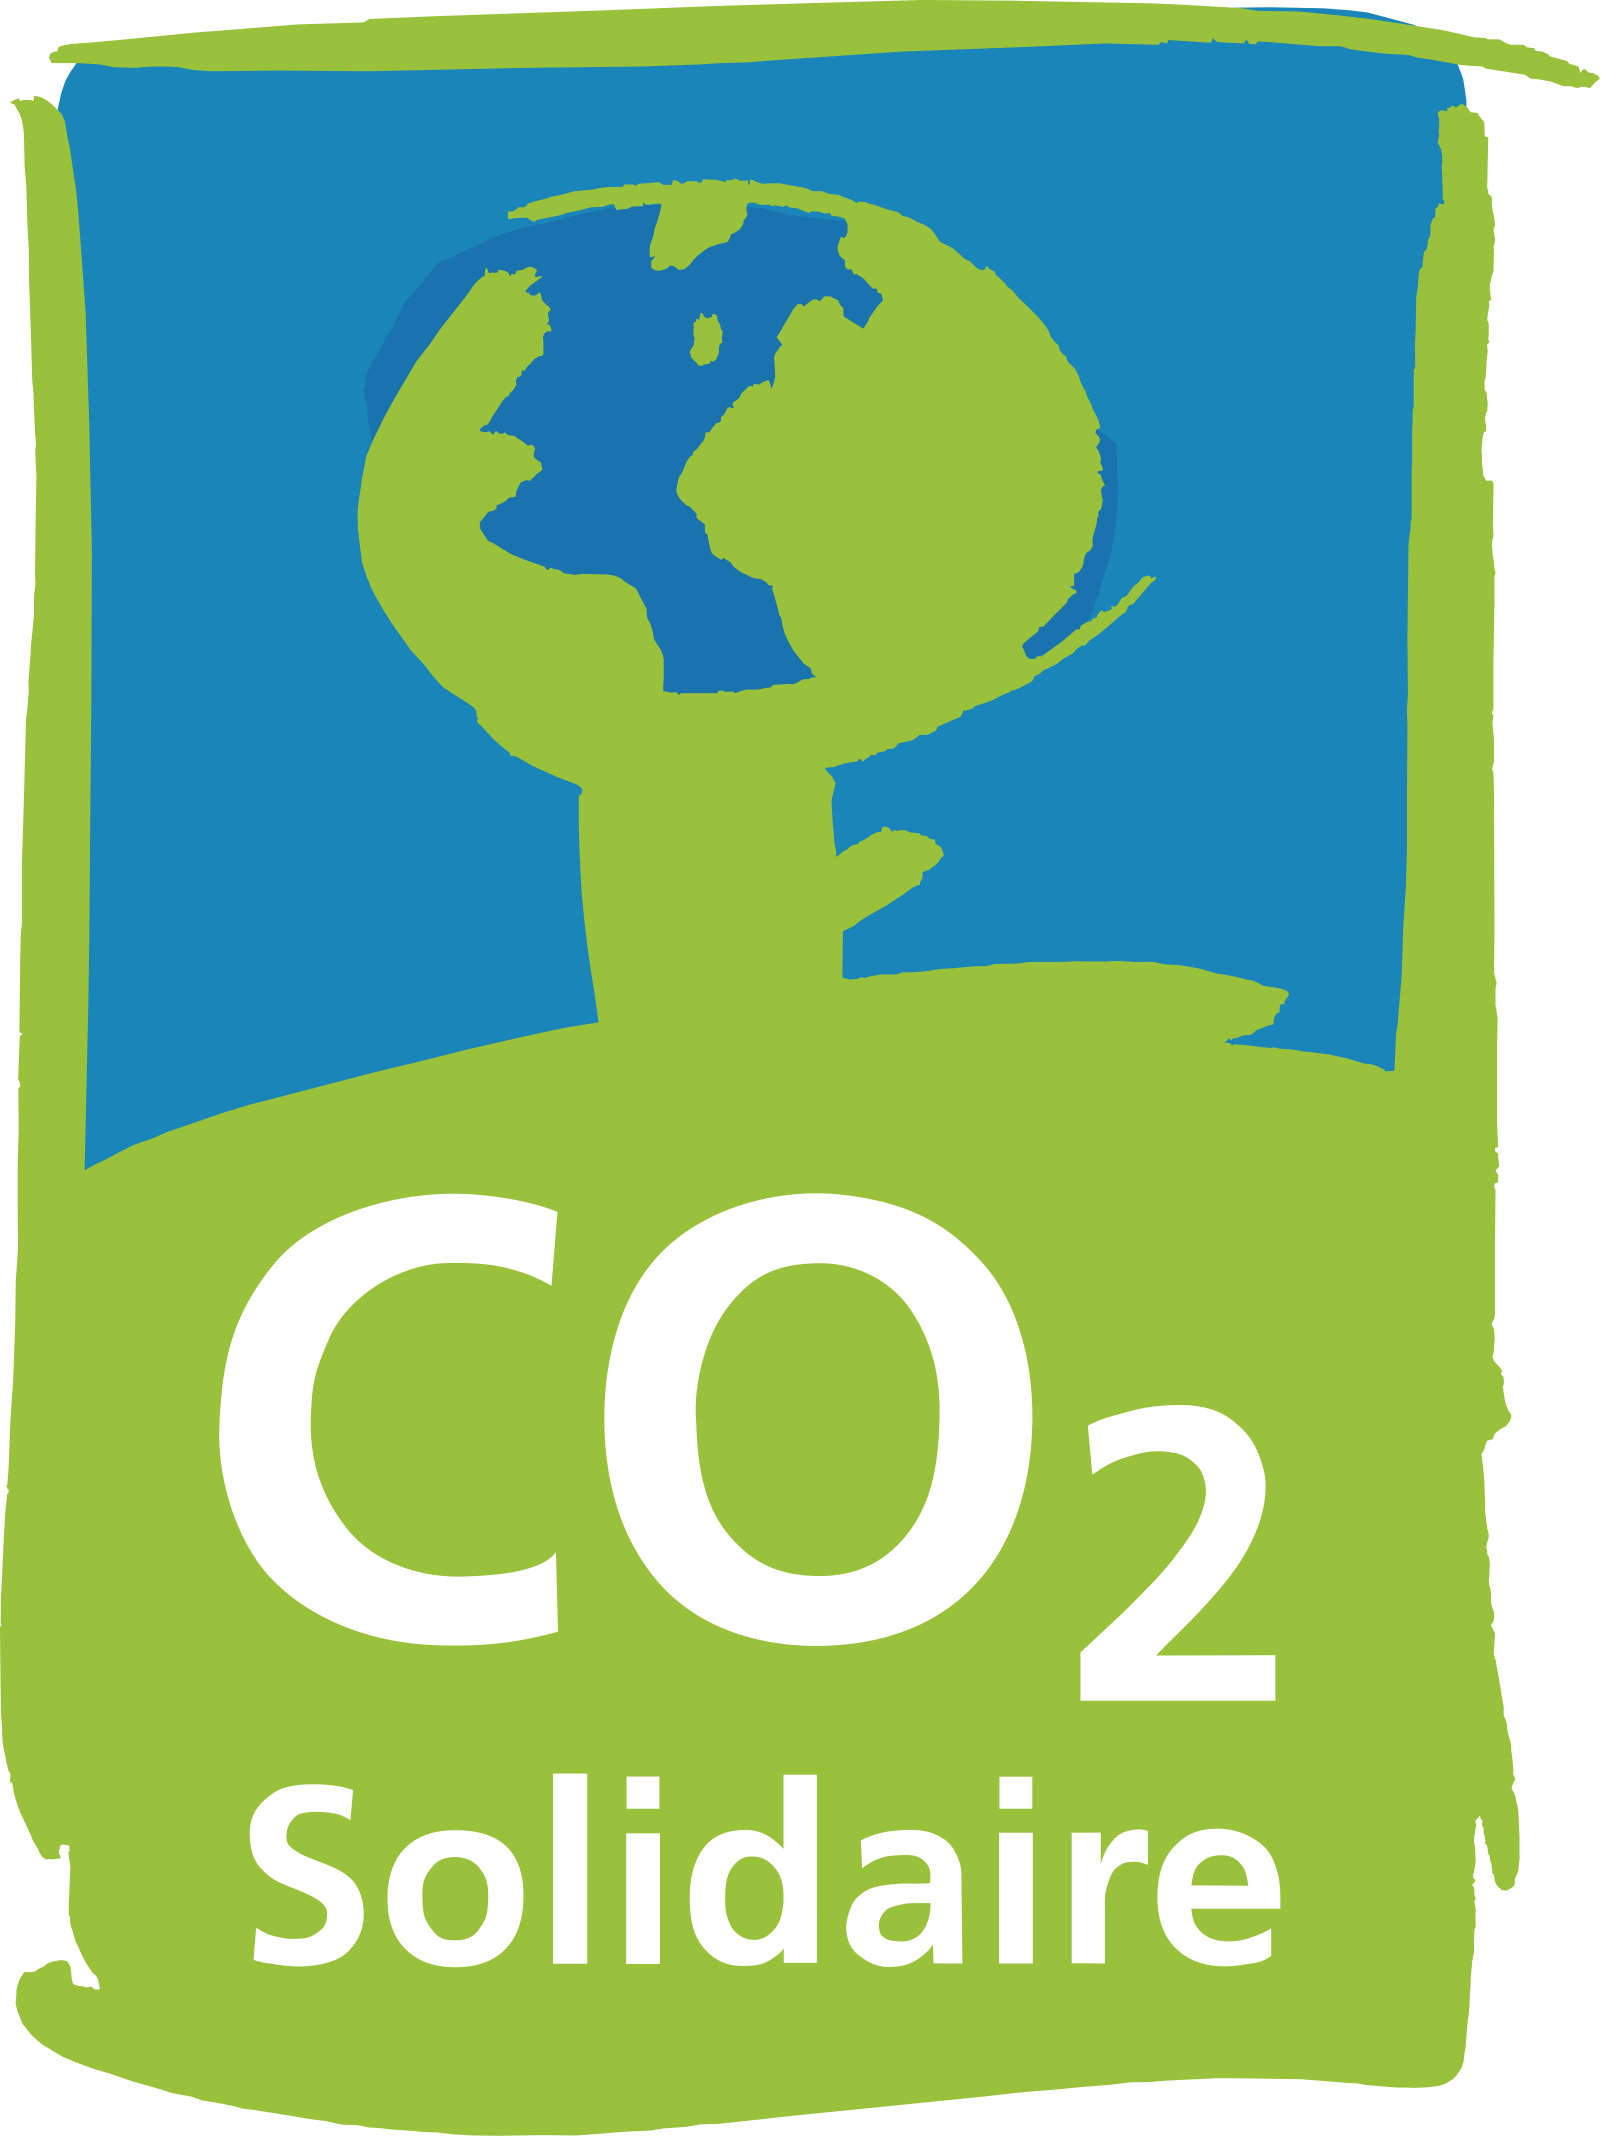 files/theme/contenus/articles/co2solidaire_300.jpg